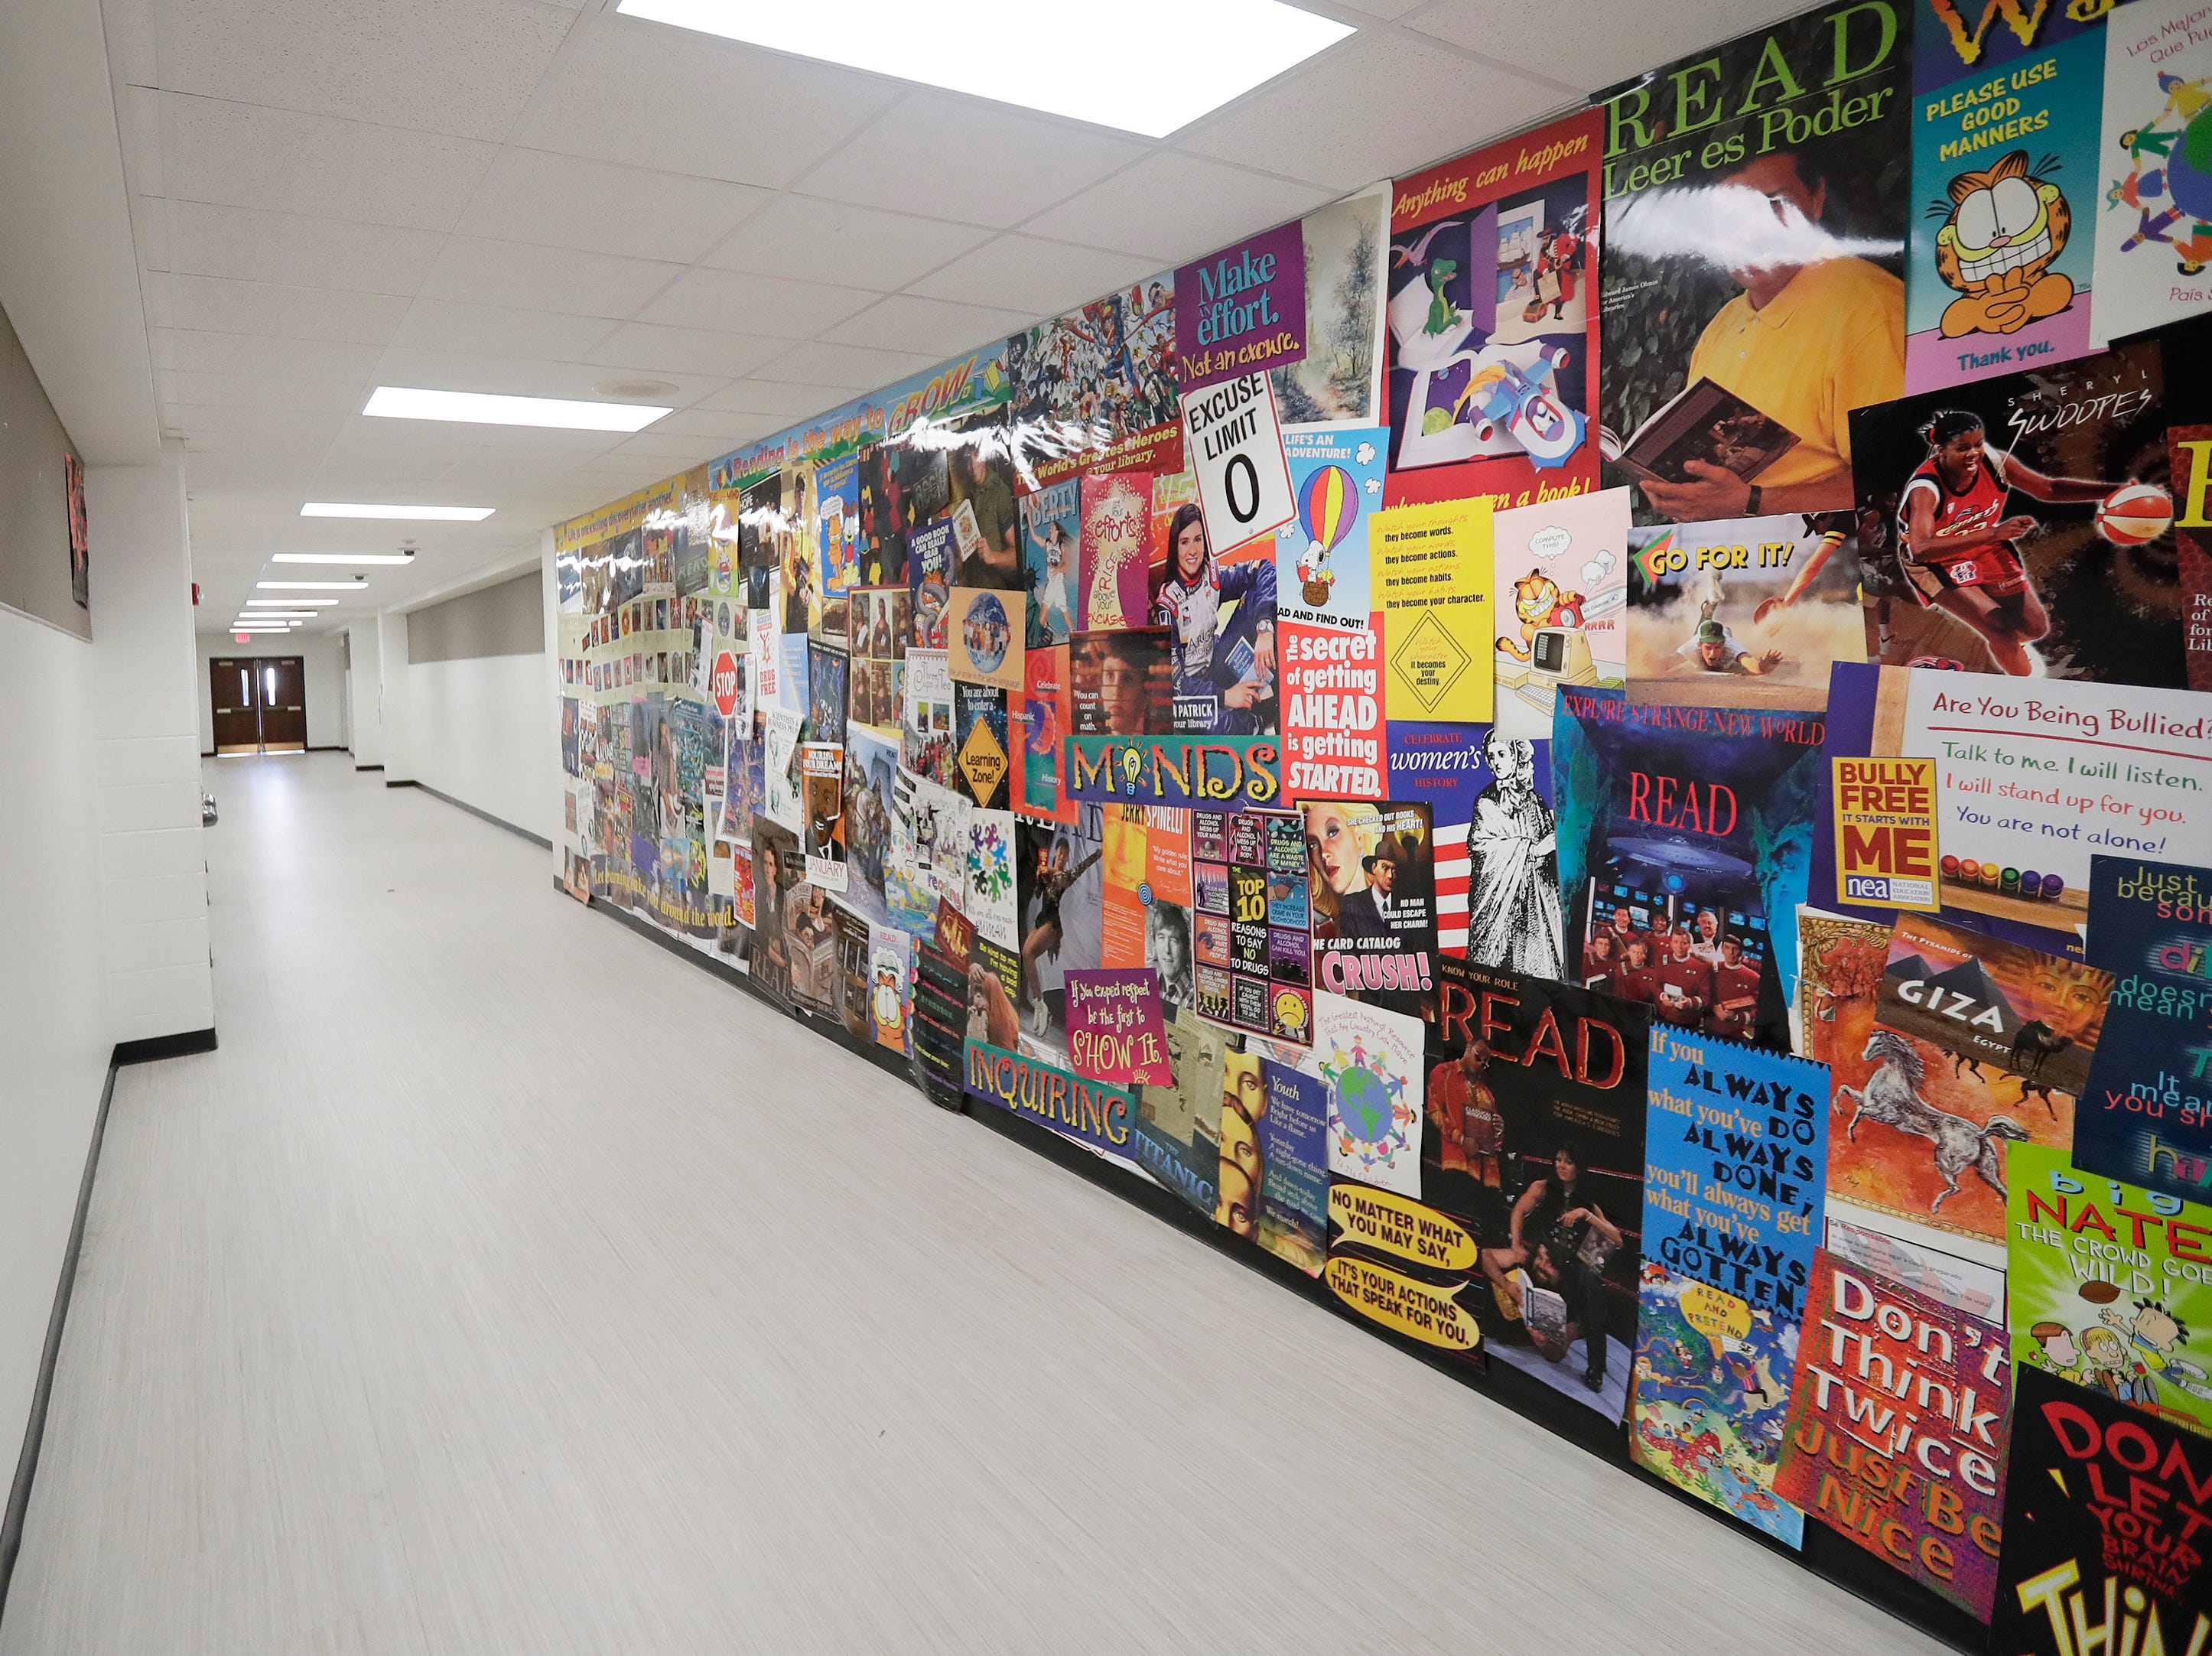 A hallway in the arts wing of Washington Middle School is shown on Wednesday, February 13, 2019 in Green Bay, Wis.